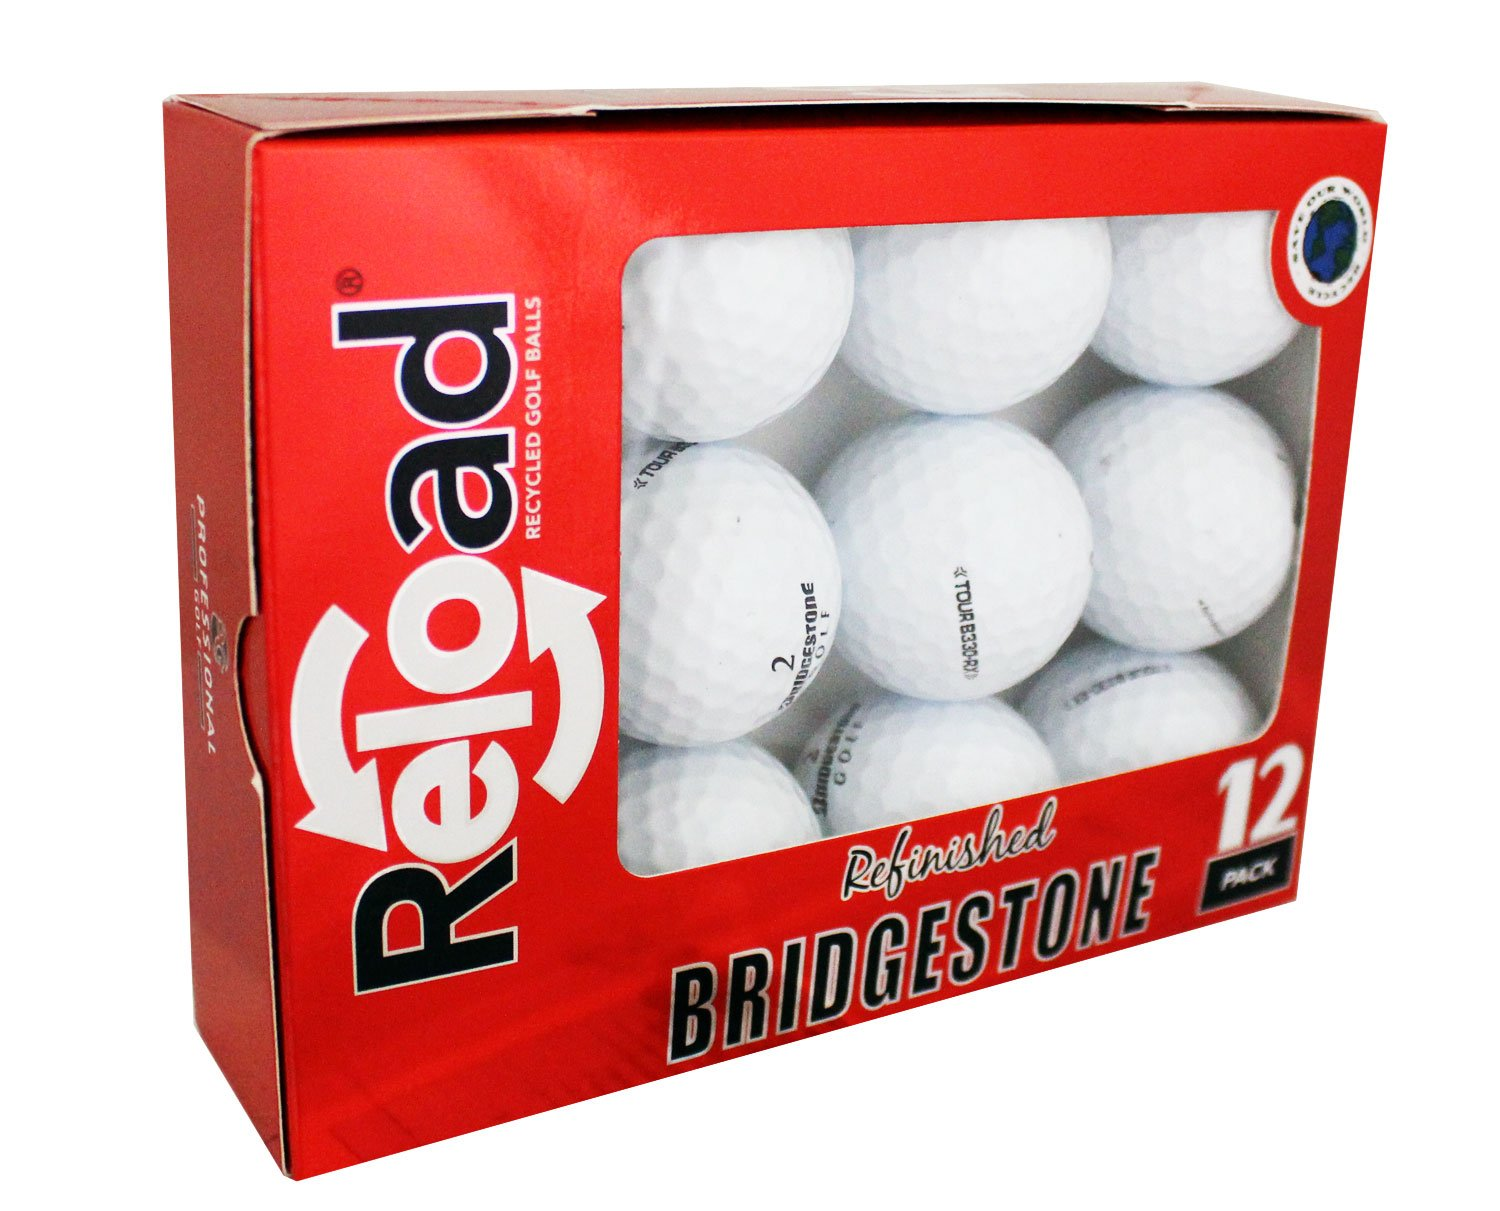 Reload Recycled Golf Balls Bridgestone B330-RX Refurbished Golf Balls (12 Pack)